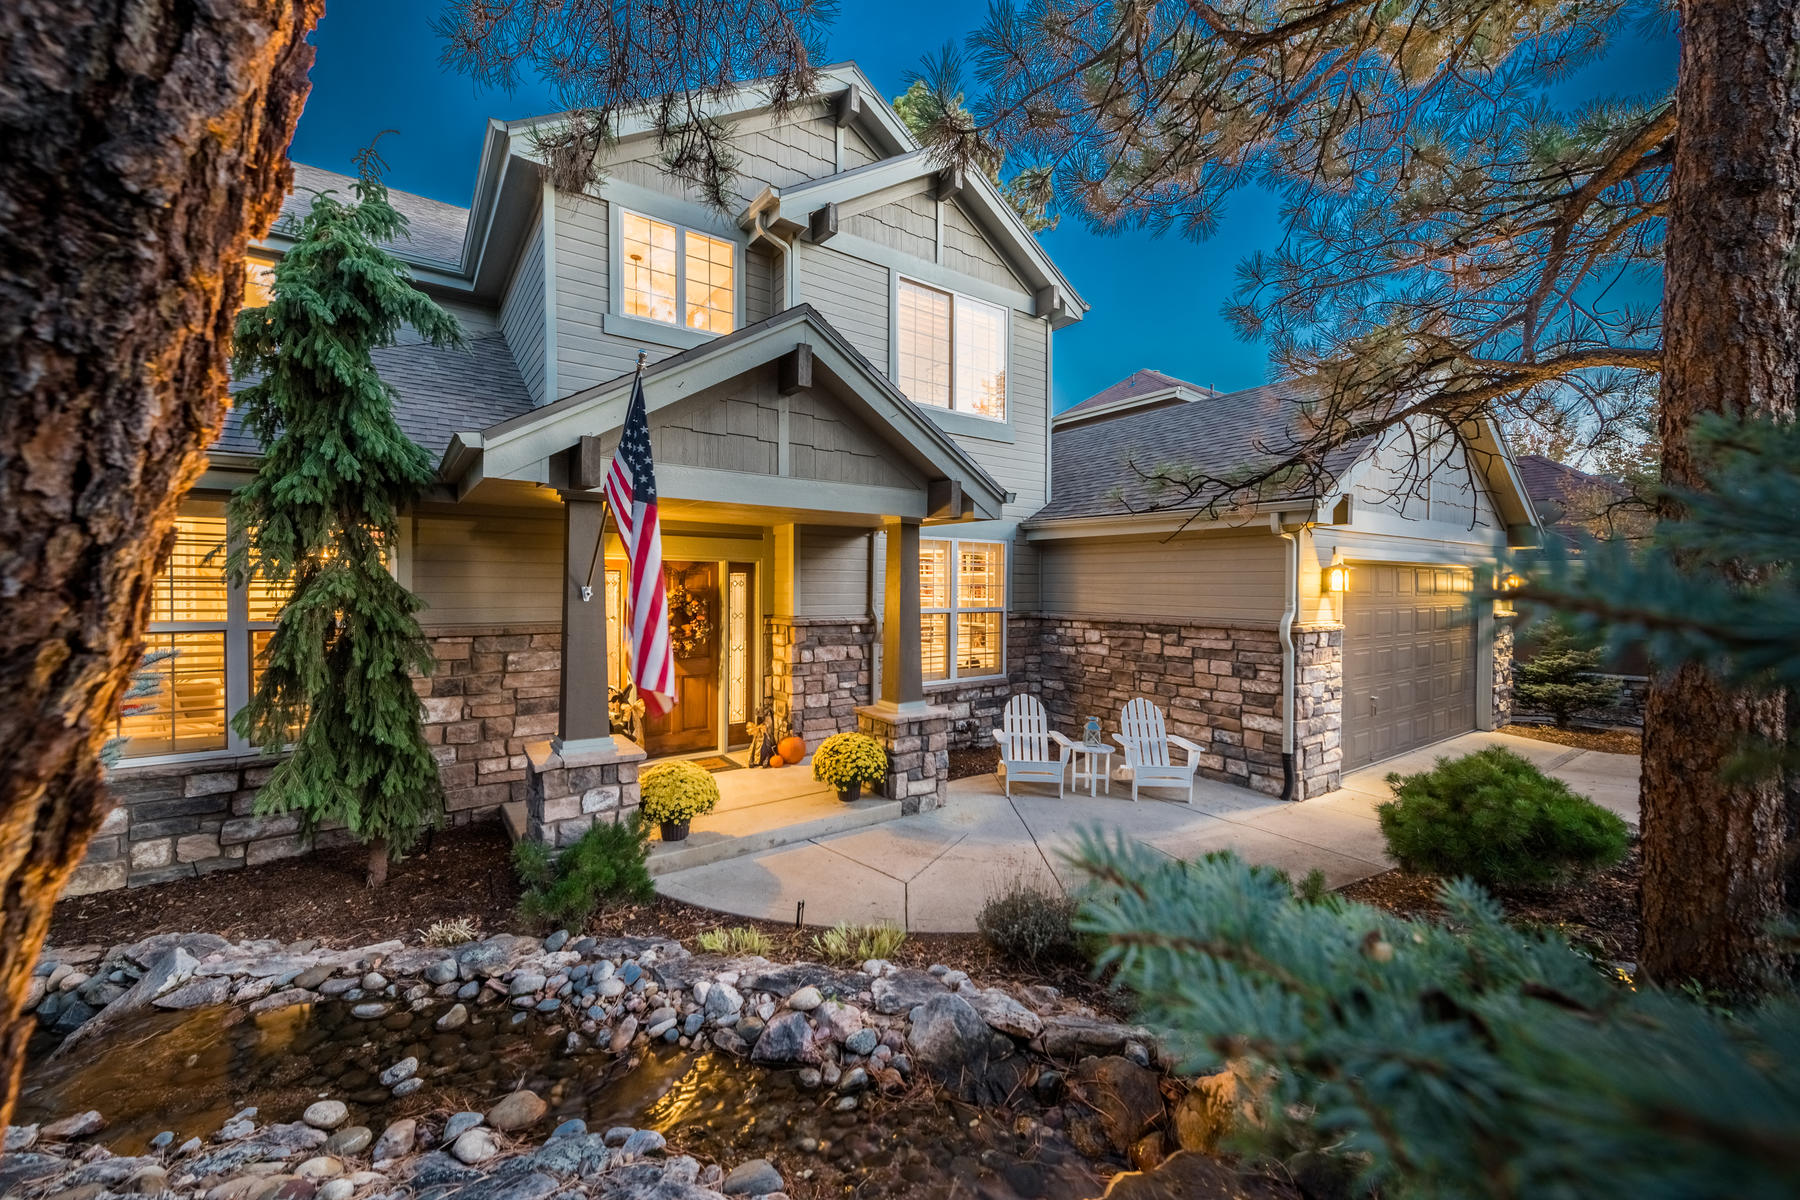 Single Family Home for Active at Exquisite Attention To Detail, With Privacy And Views Of Open Space 7074 Timbercrest Way Castle Pines, Colorado 80108 United States